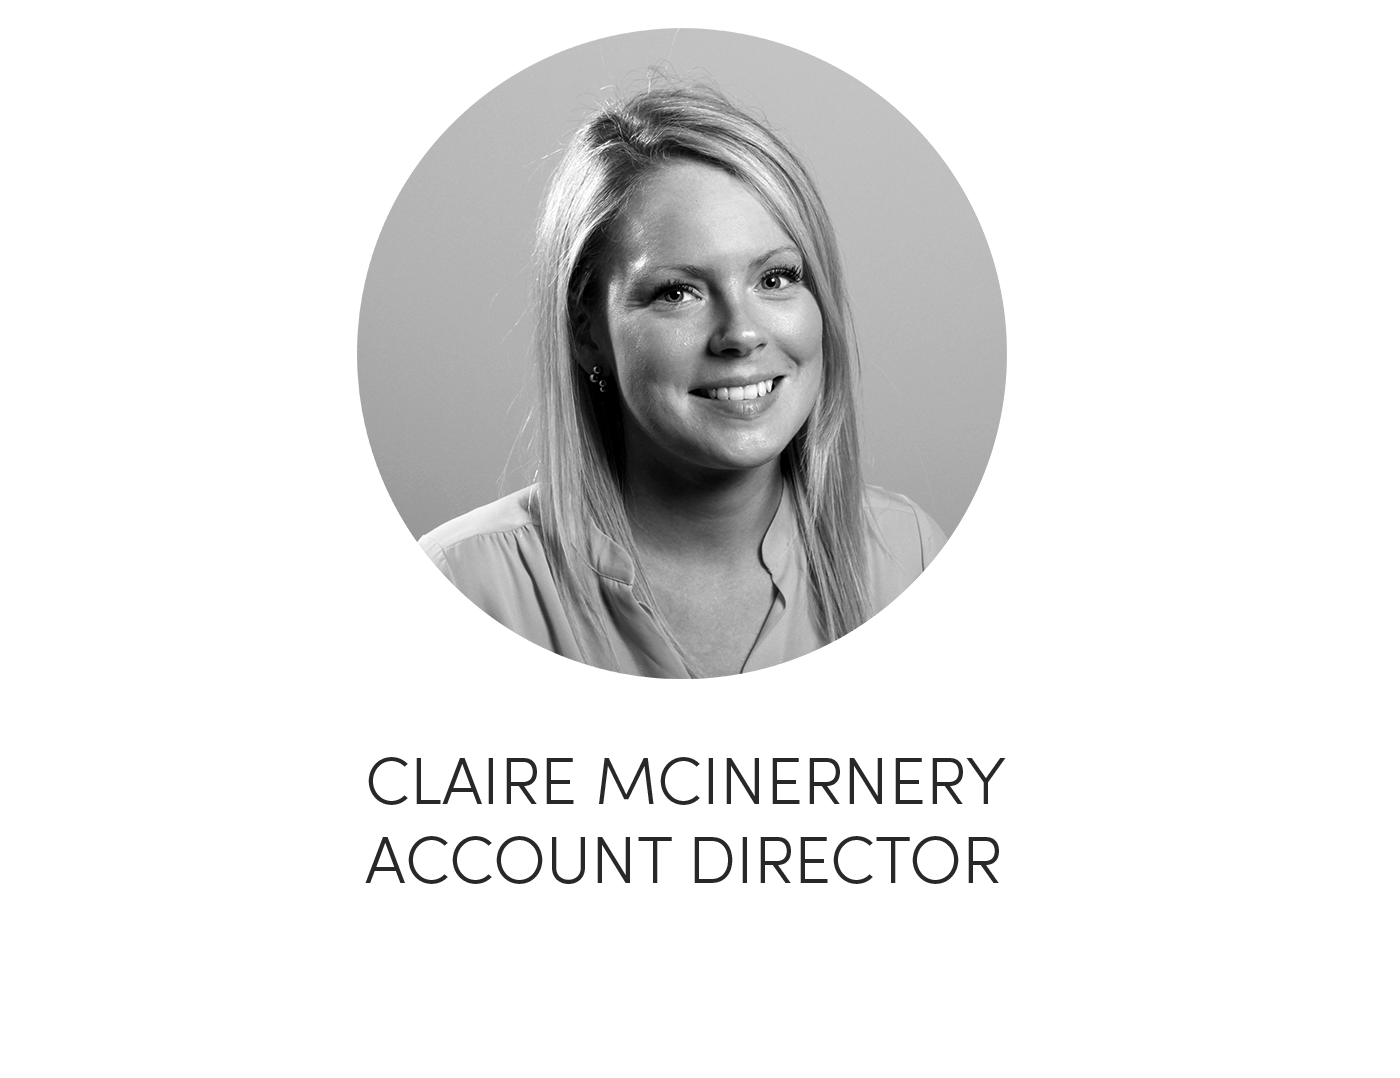 claire-mcinernery